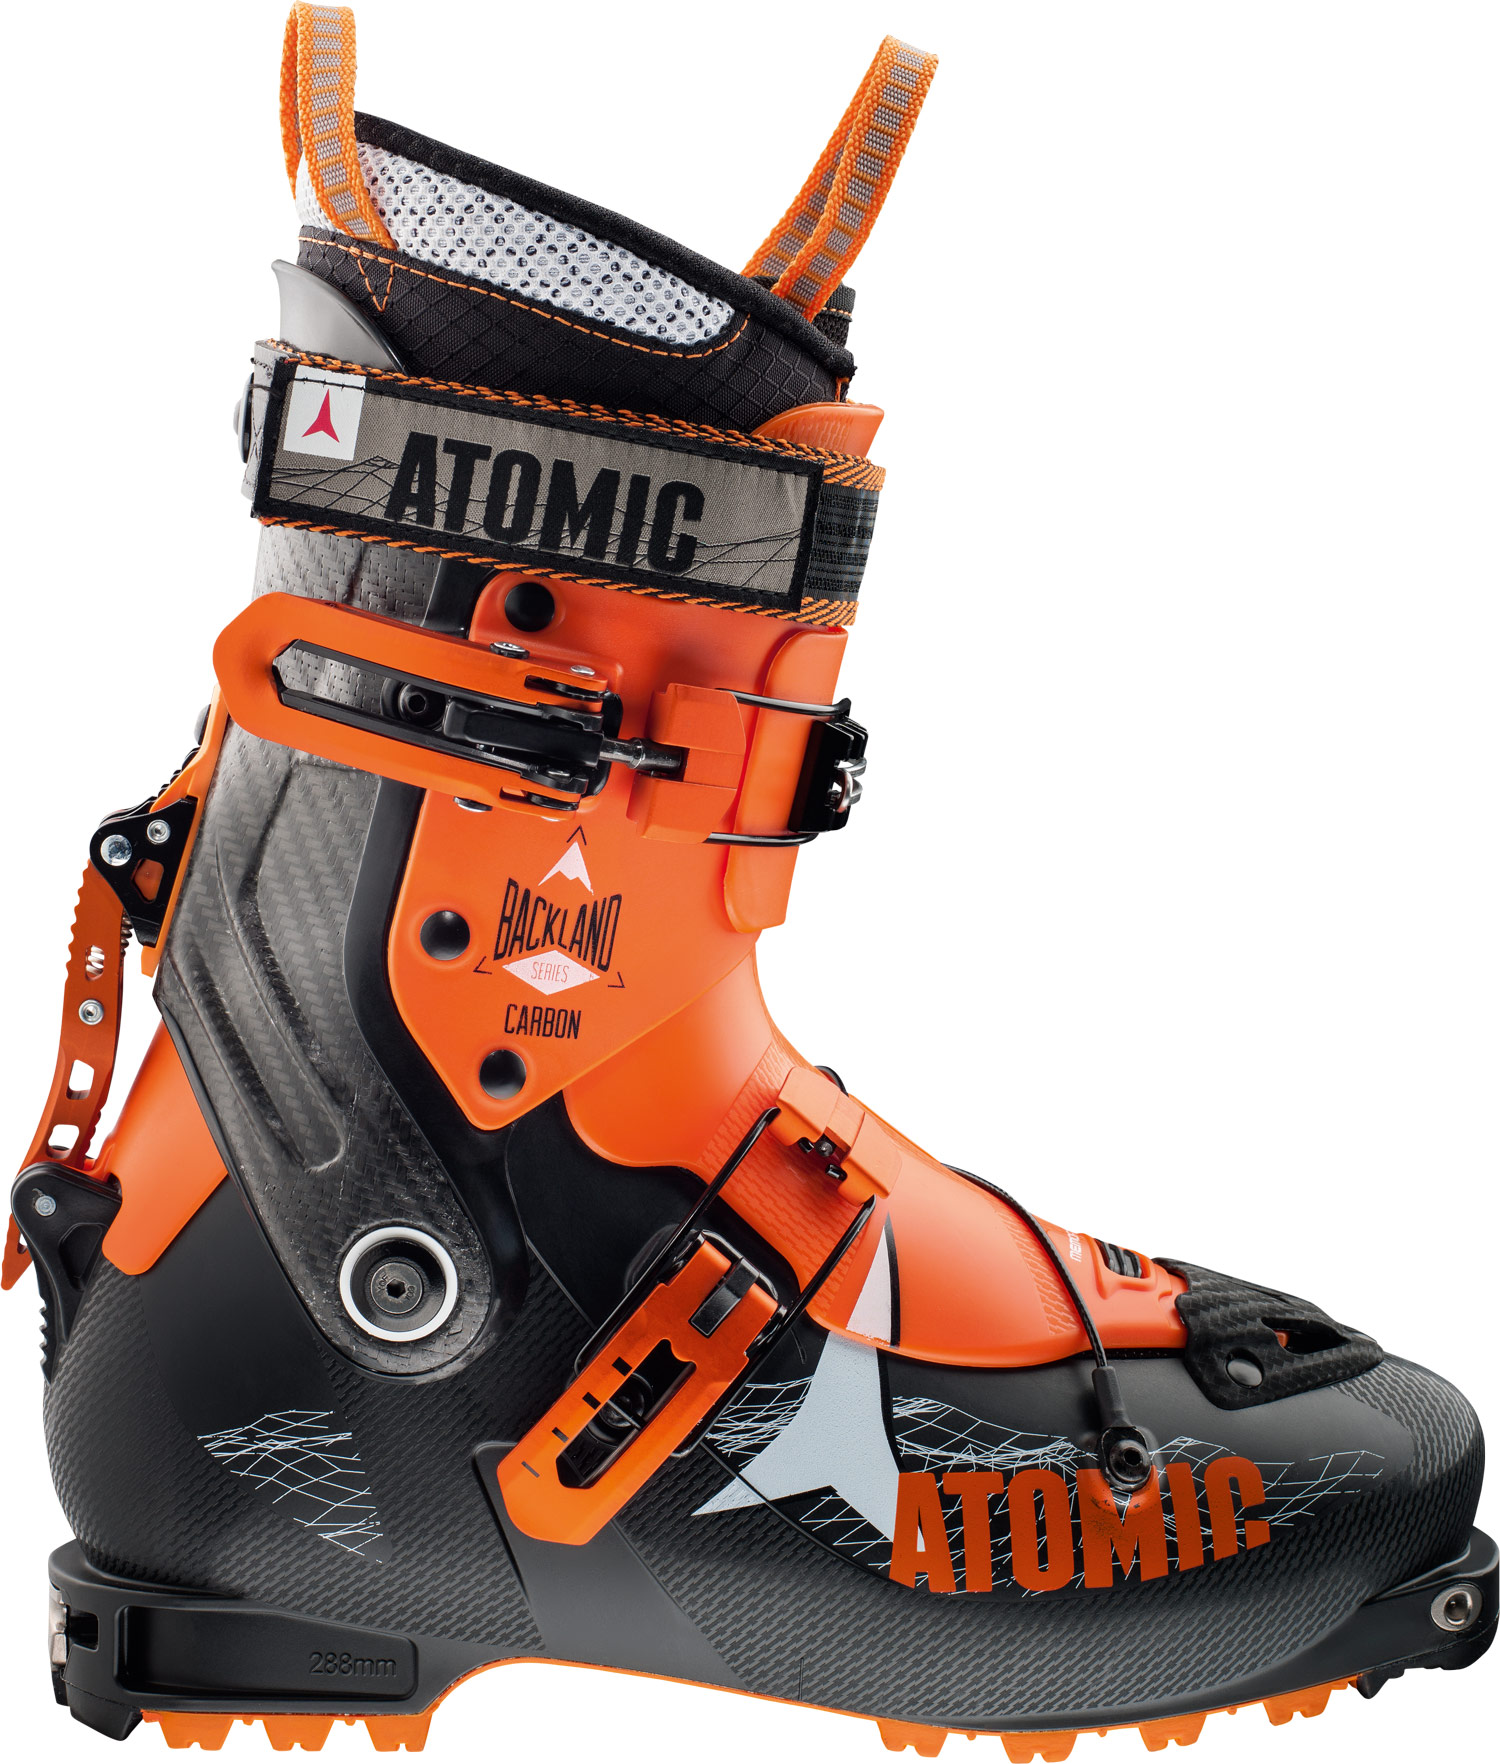 backland-carbon-boots